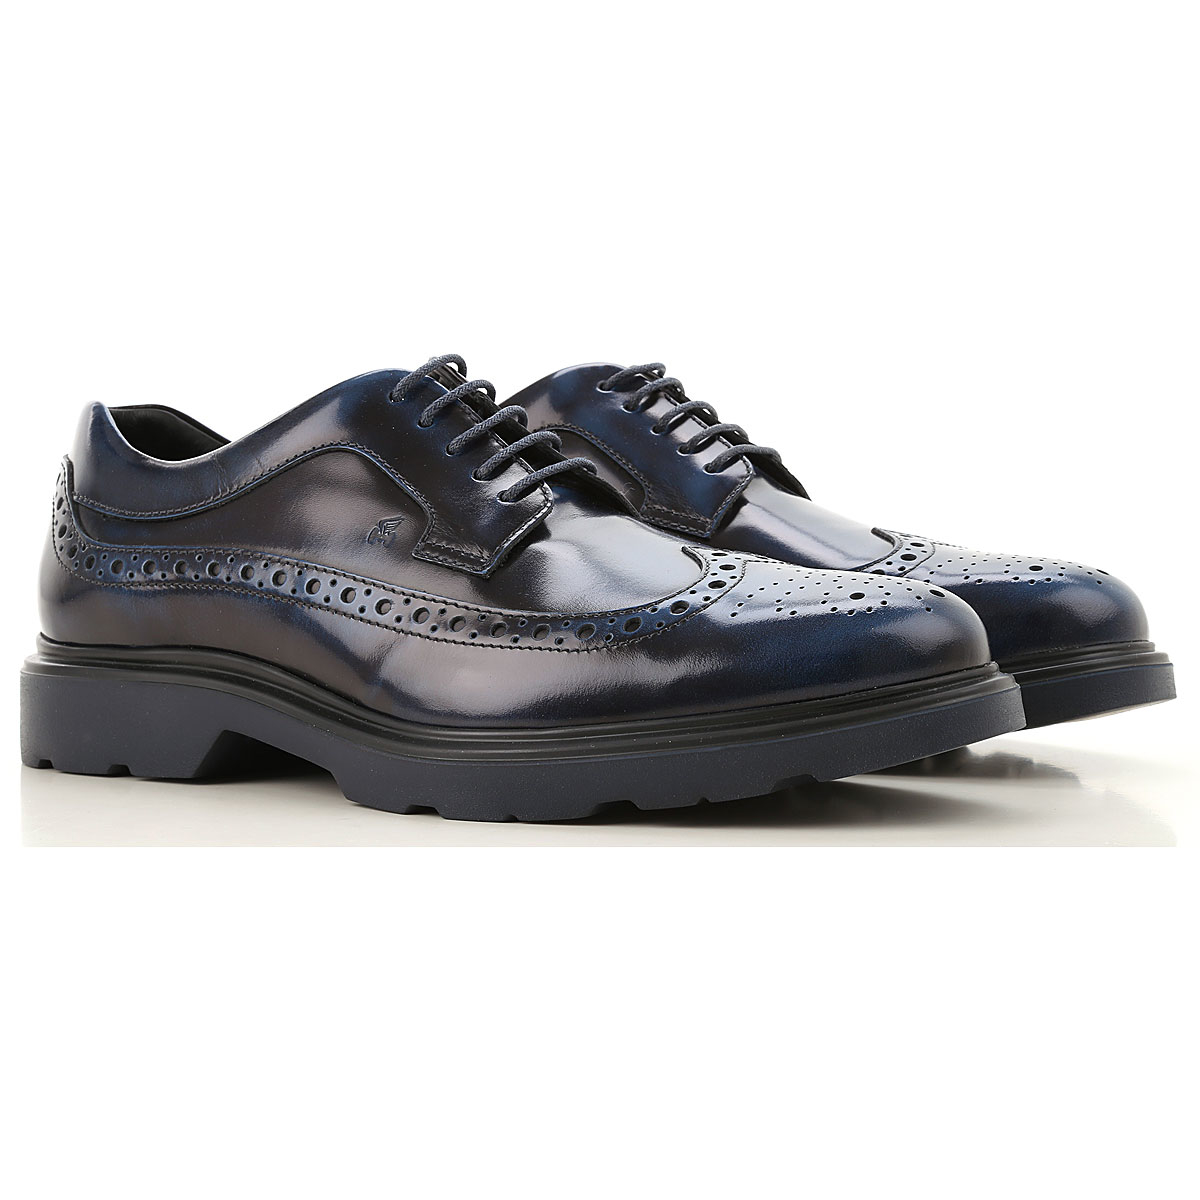 Hogan Lace Up Shoes for Men Oxfords Derbies and Brogues - GOOFASH